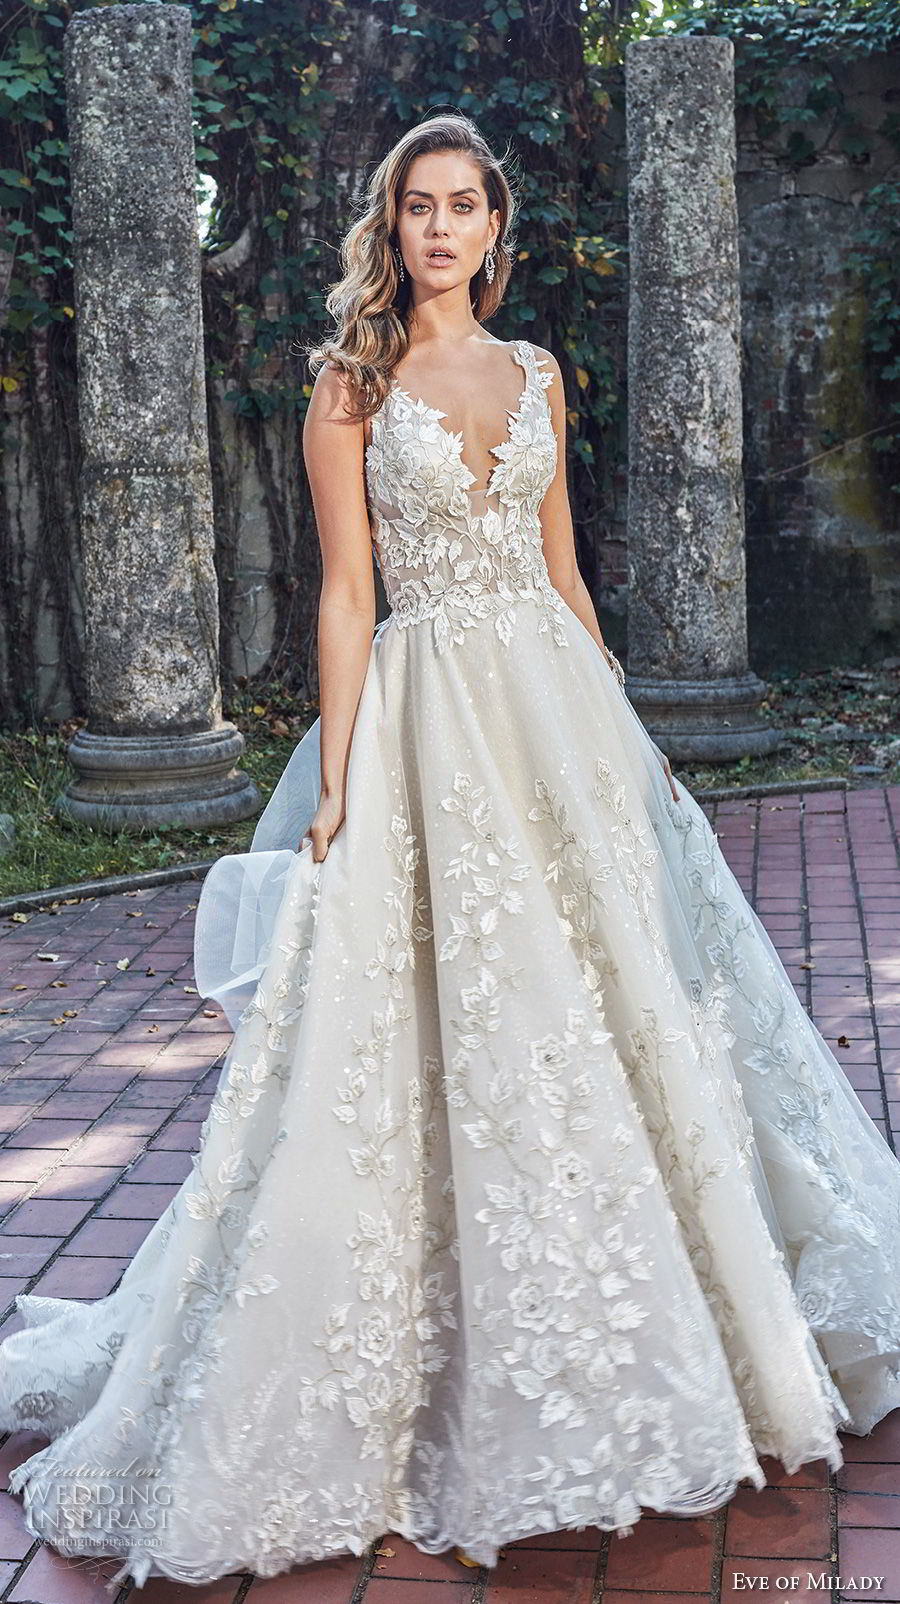 China a line leaves lace bridal gown v neckline beaded wedding dress a line leaves lace bridal gown v neckline beaded wedding dress 2018 y20169 junglespirit Gallery